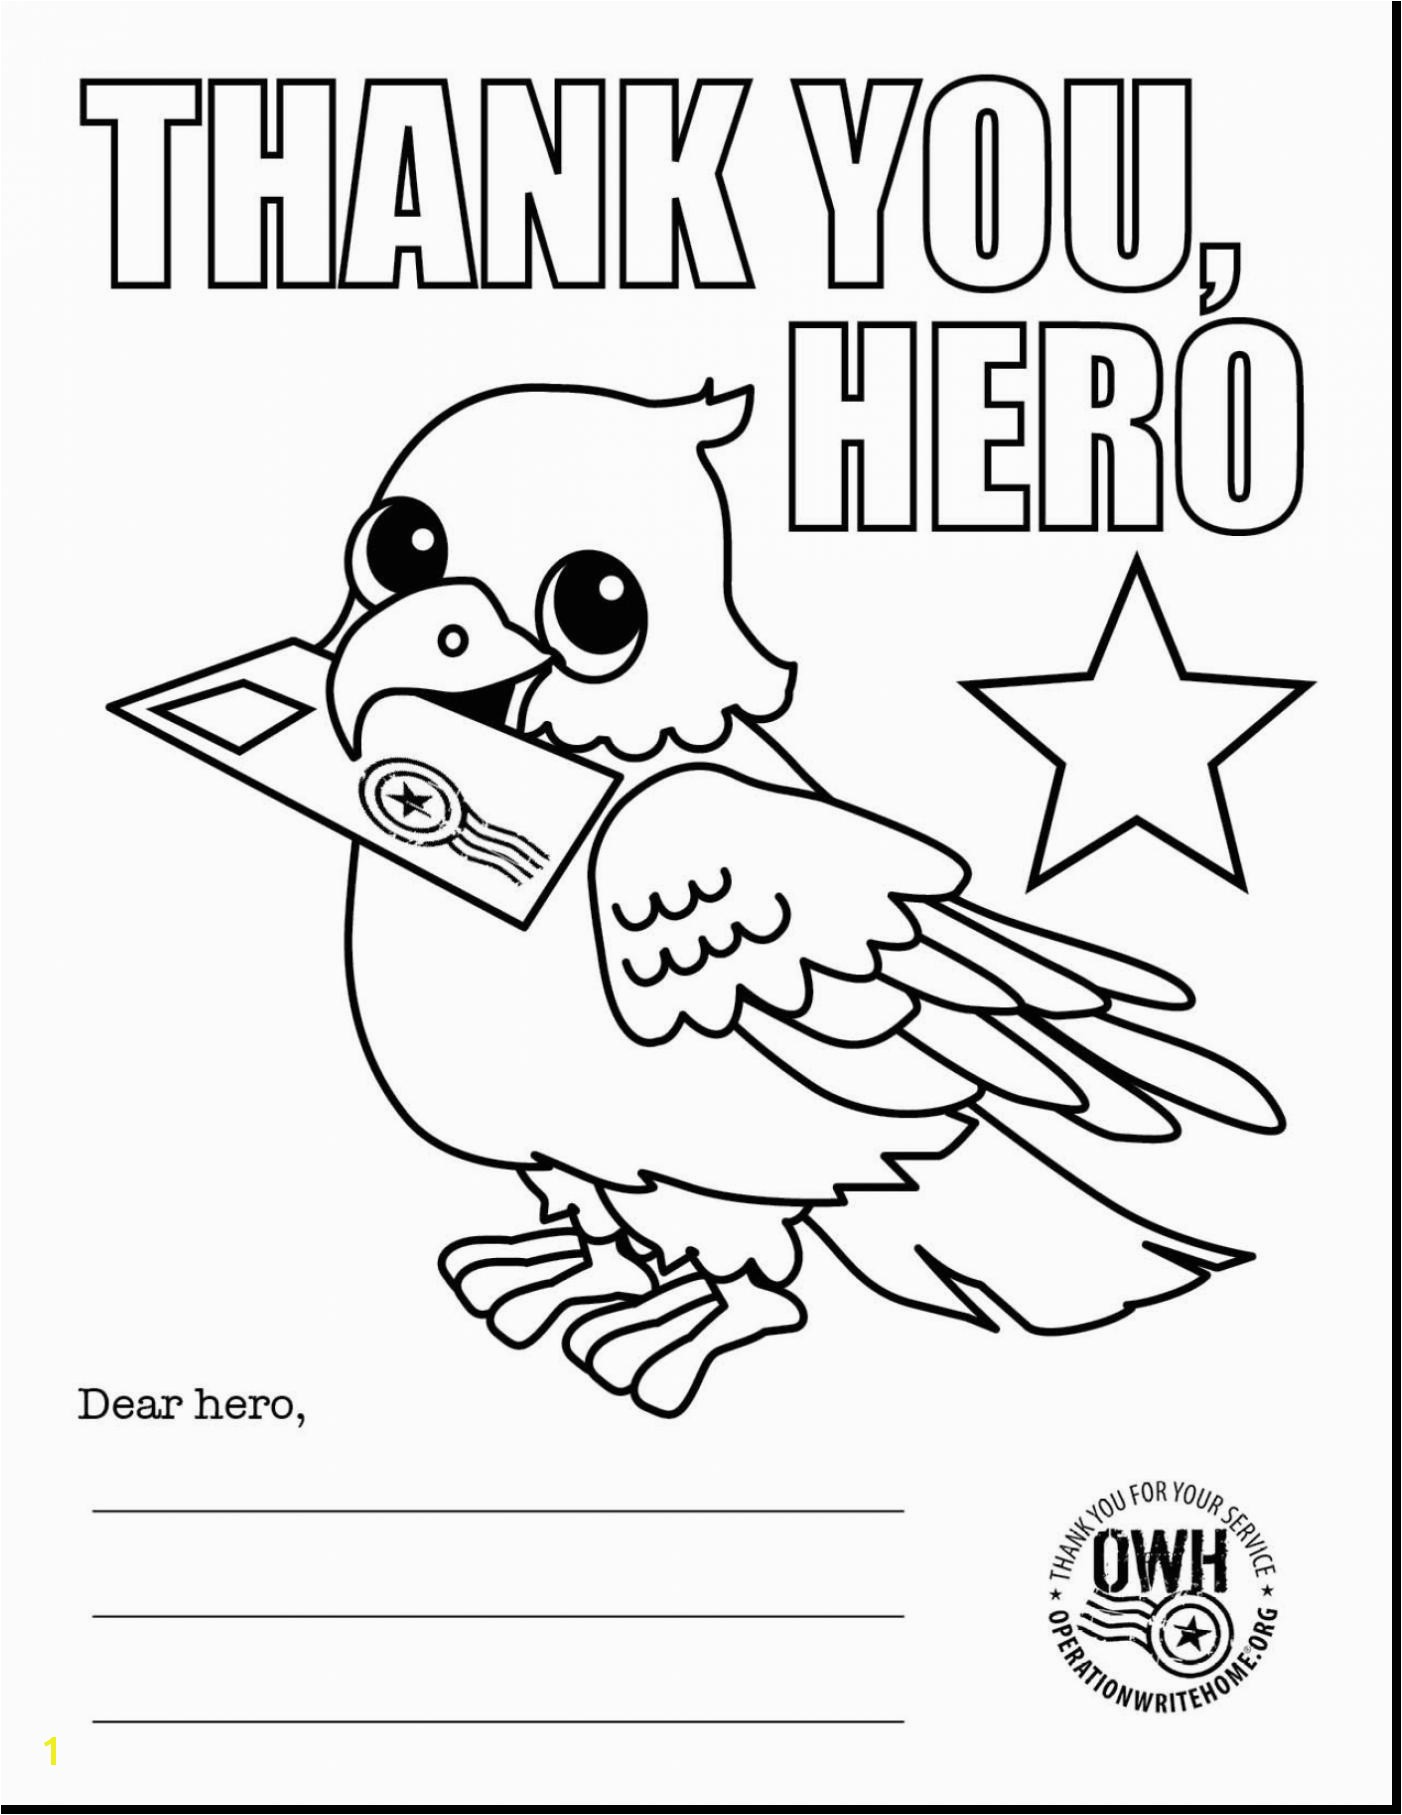 Thank You Coloring Pages for Teachers Inspirational Coloring Pages Teacher Appreciation Week Katesgrove